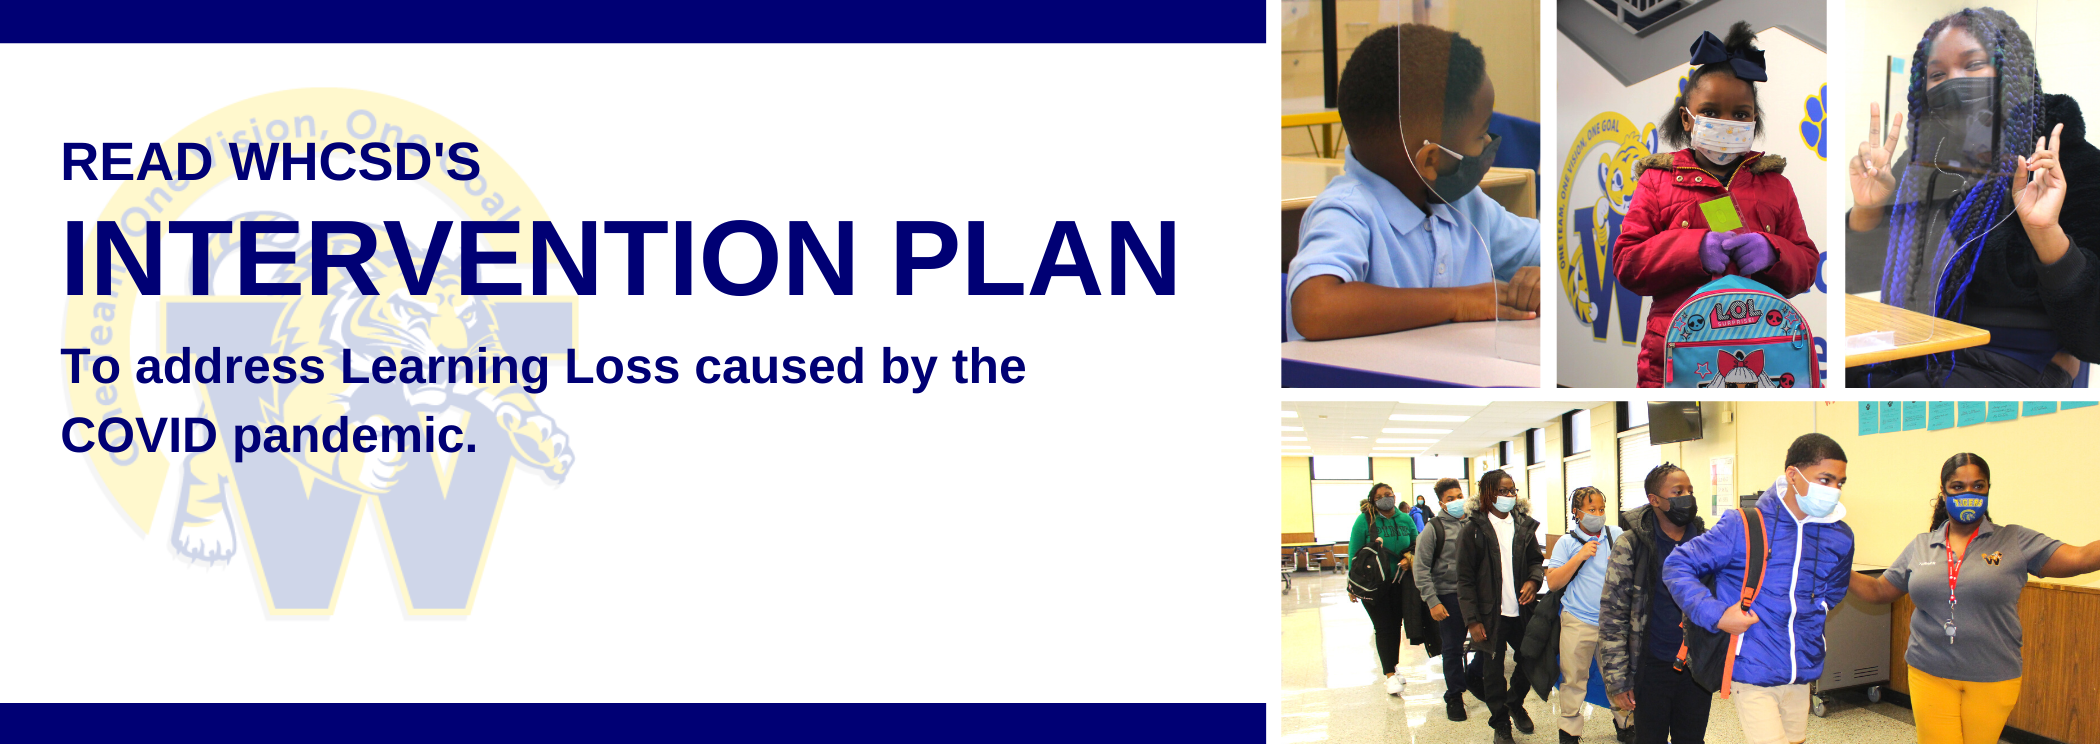 READ WHCSD's Intervention plan to address learning loss caused by the covid pandemic